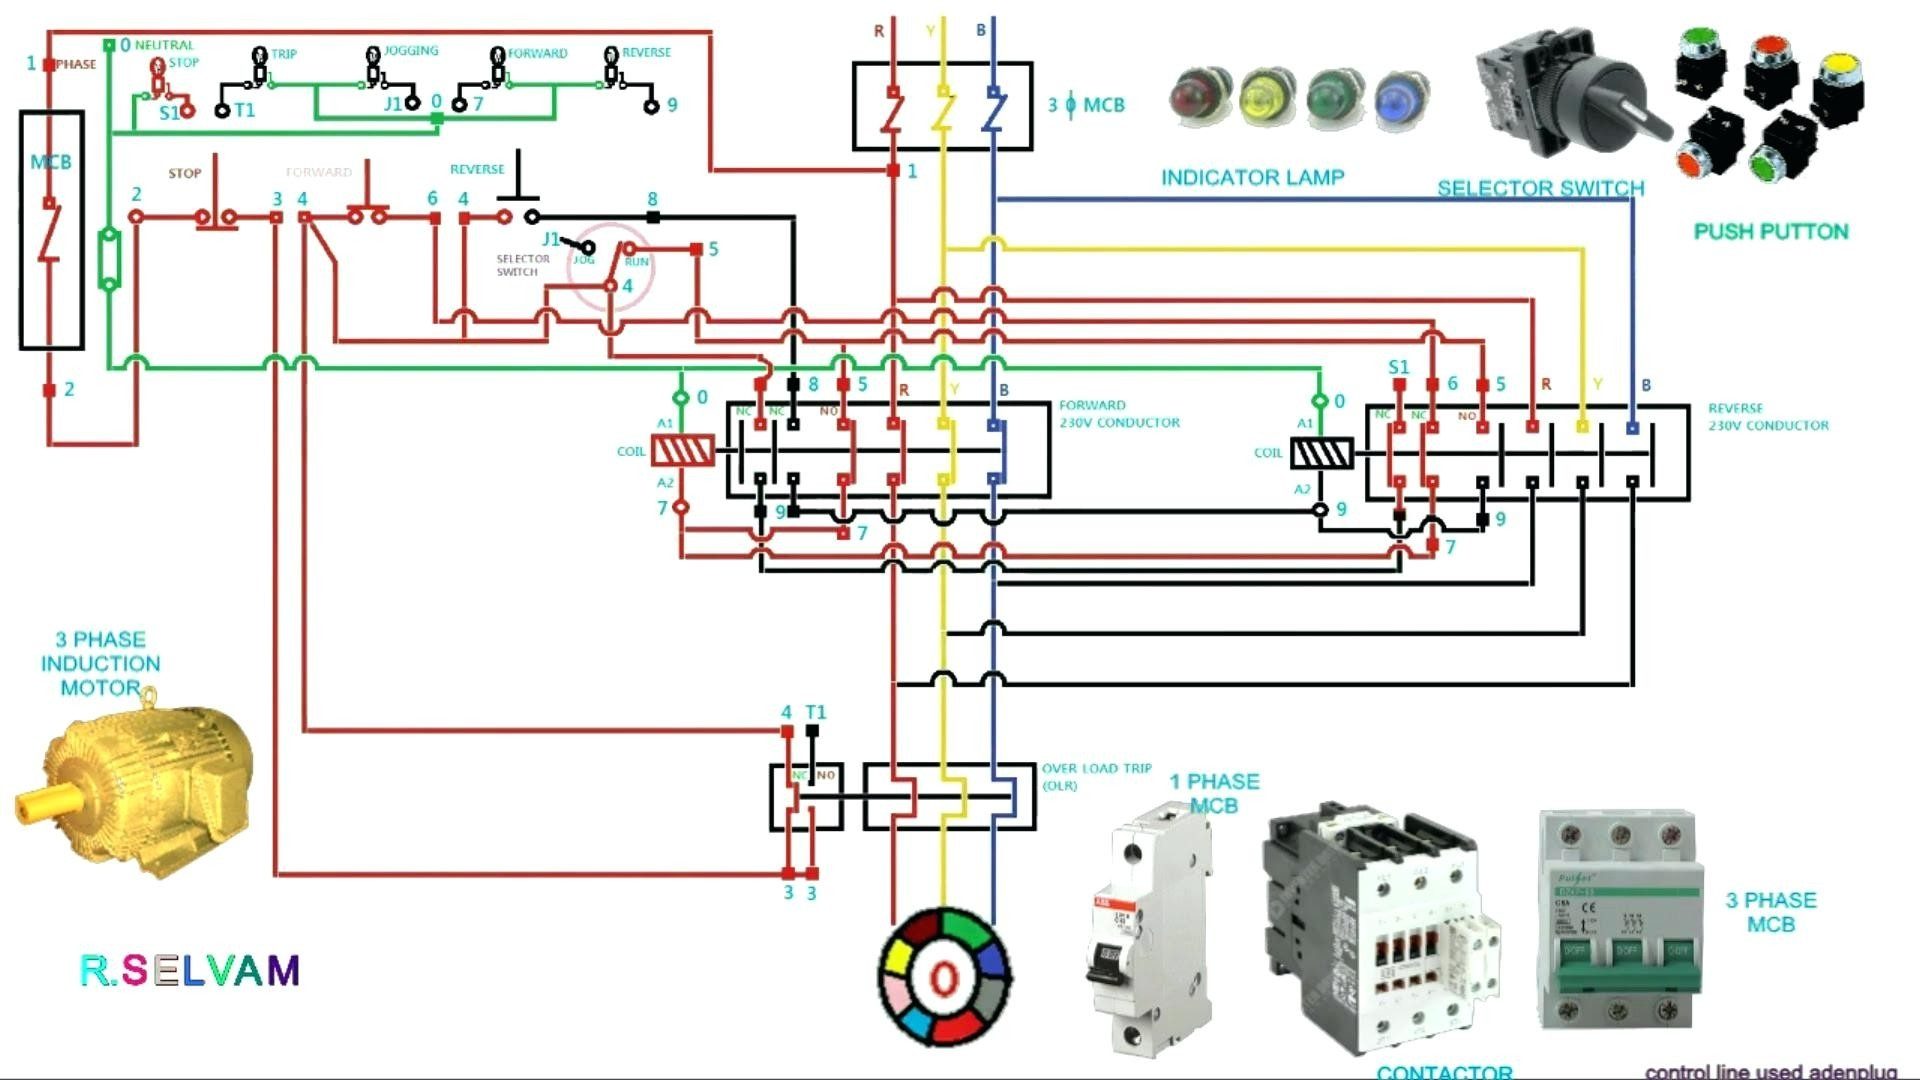 hight resolution of  contactor wiring diagram start stop free wiring diagram on electrical contactor diagram magnetic contactor